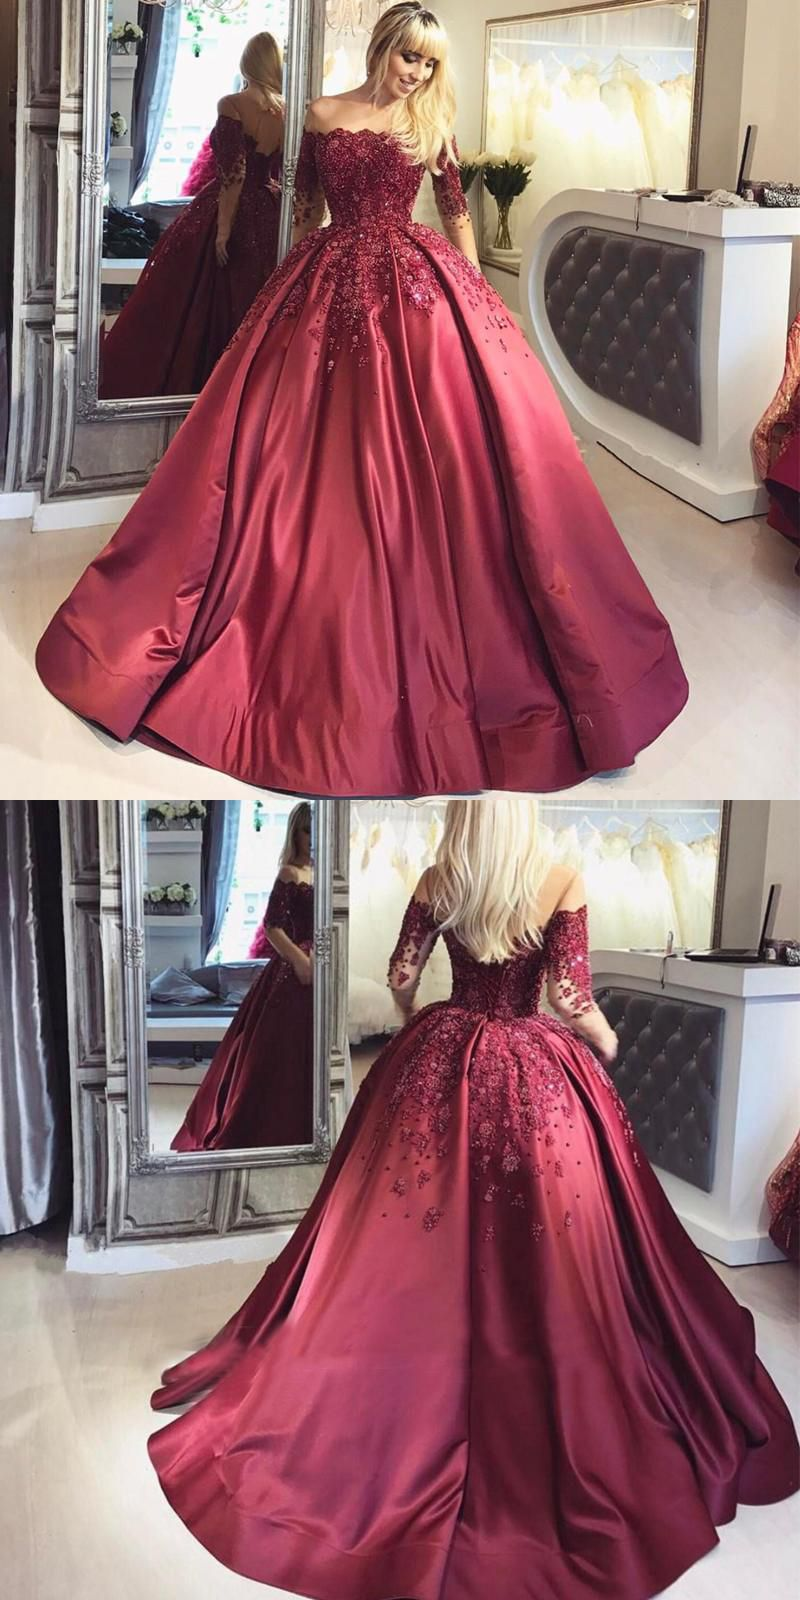 ae4952c0c84 Glamorous Ball Gown Off-The-Shoulder Long Sleeves Burgundy Prom Evening  Dress With Appliques+ promdresses  longpromdresses  burgundypromdresses   promgown   ...